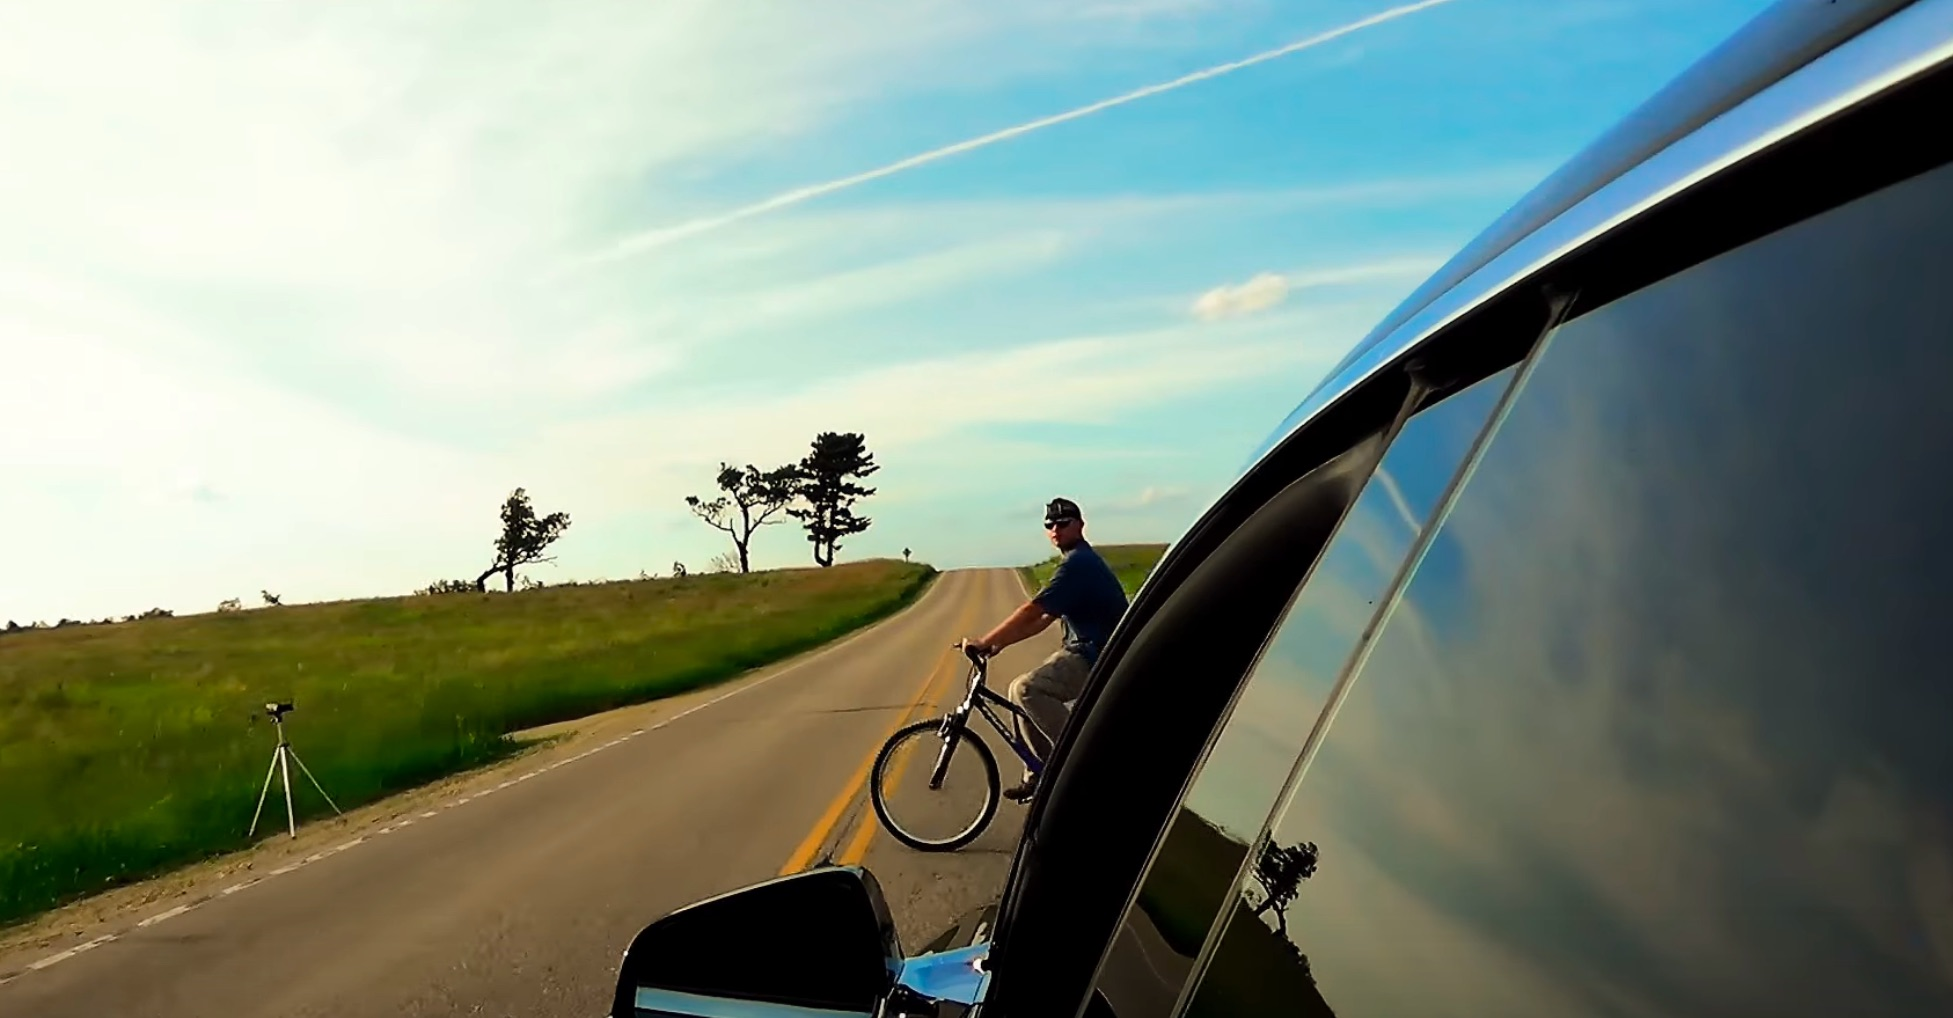 Tesla Model S Owner Tests Autopilots Ability To Avoid Hitting Bikers Video